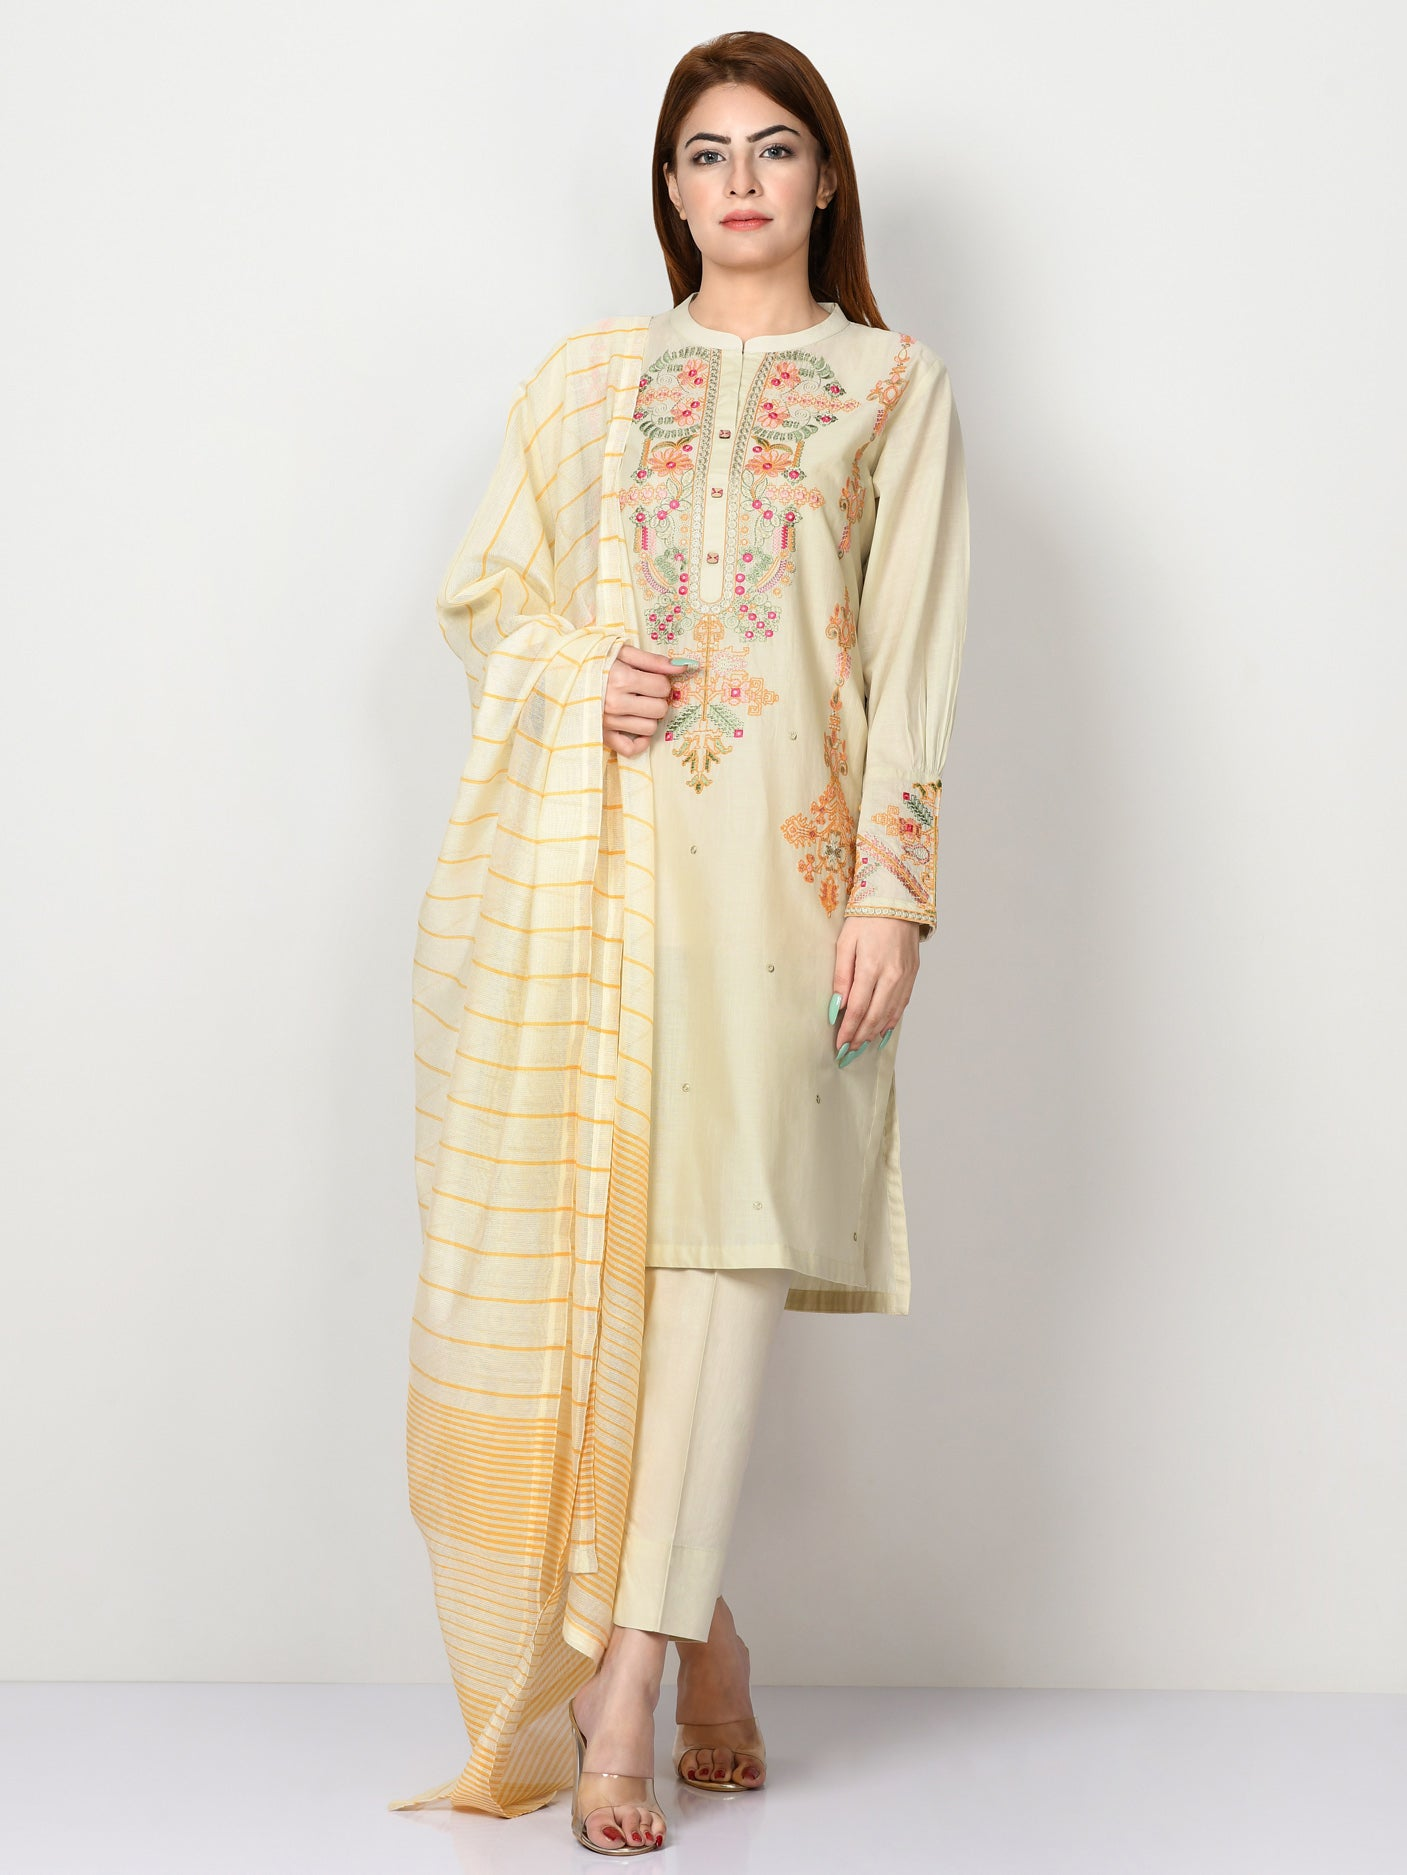 Embroidered Slub Lawn Suit